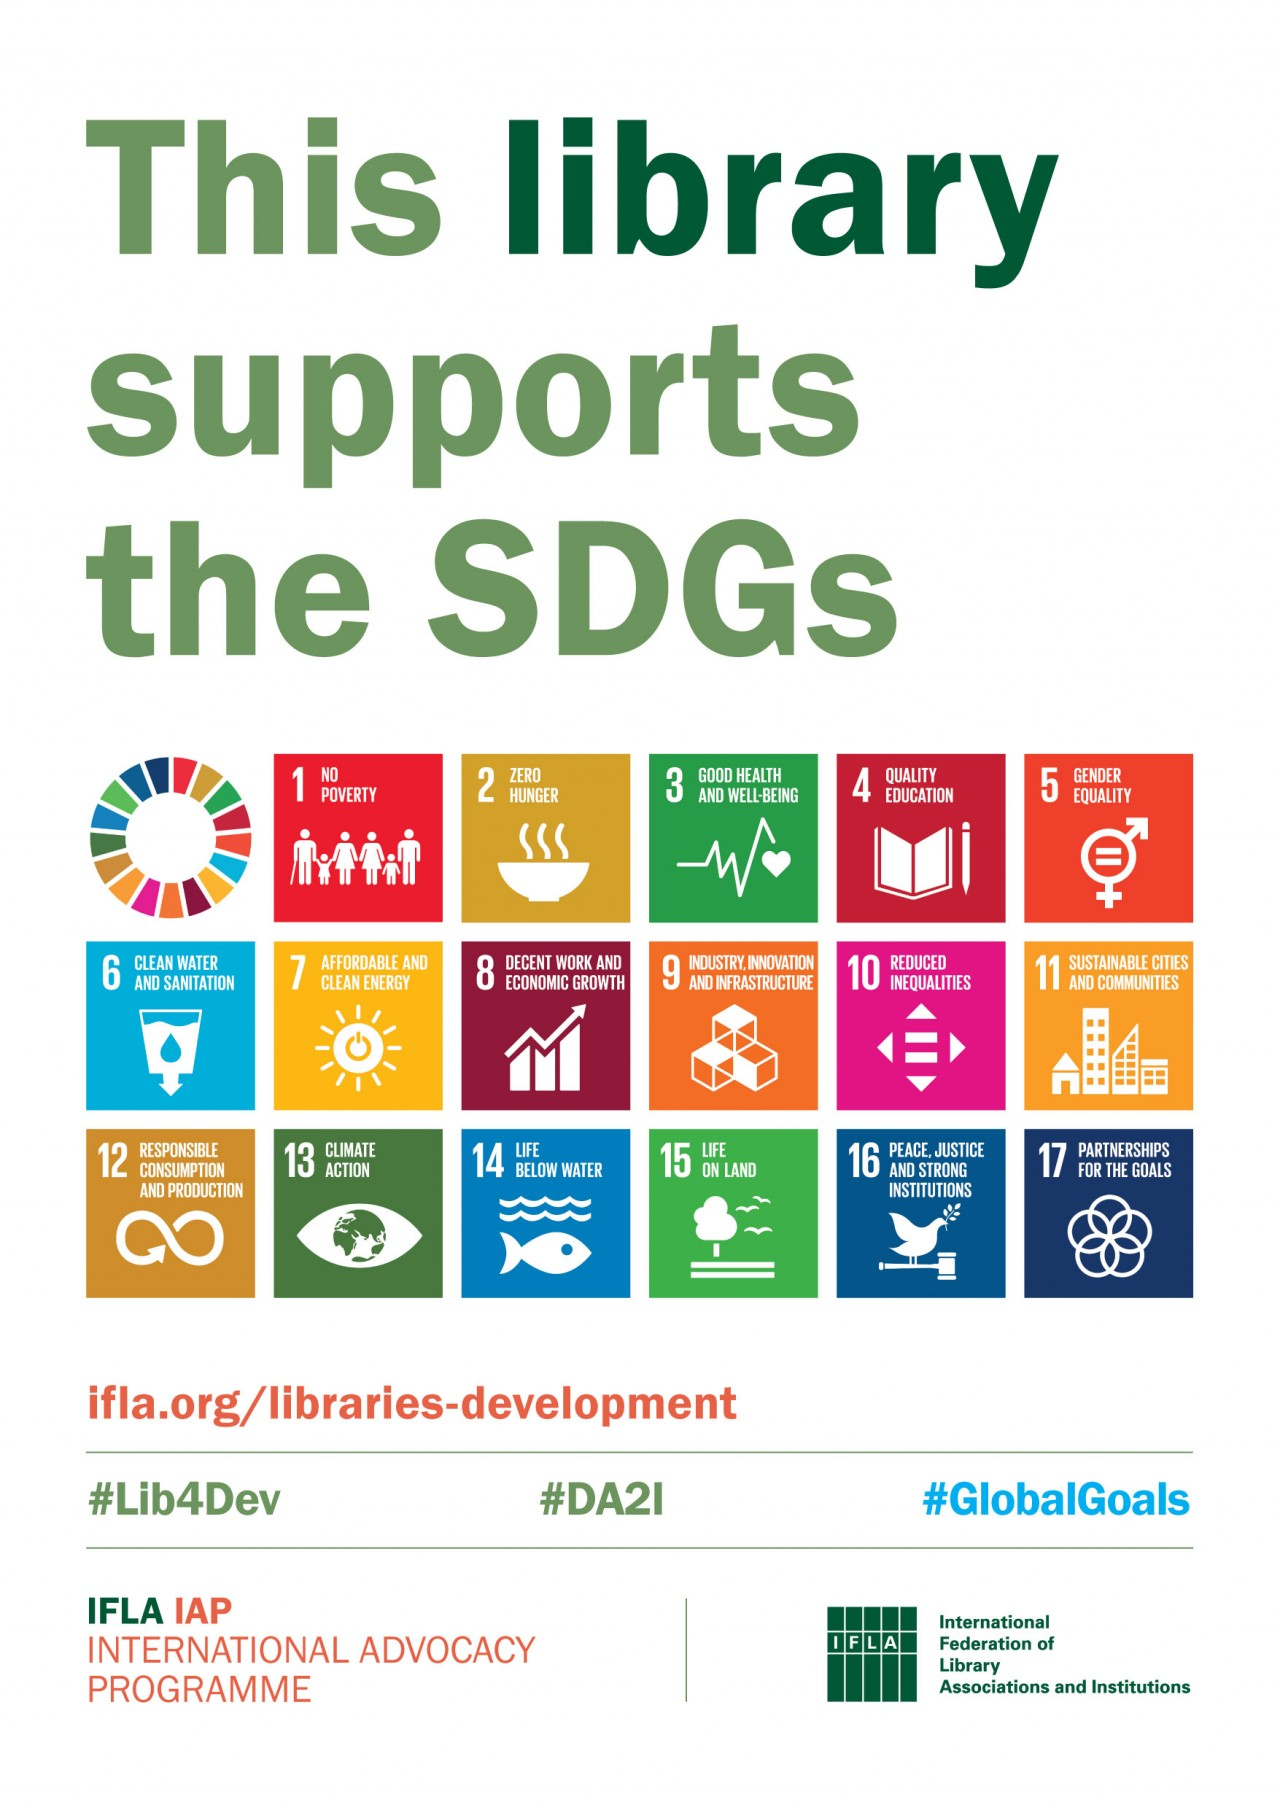 IFLA Poster: This library supports the SDGs. Image: SDG icons